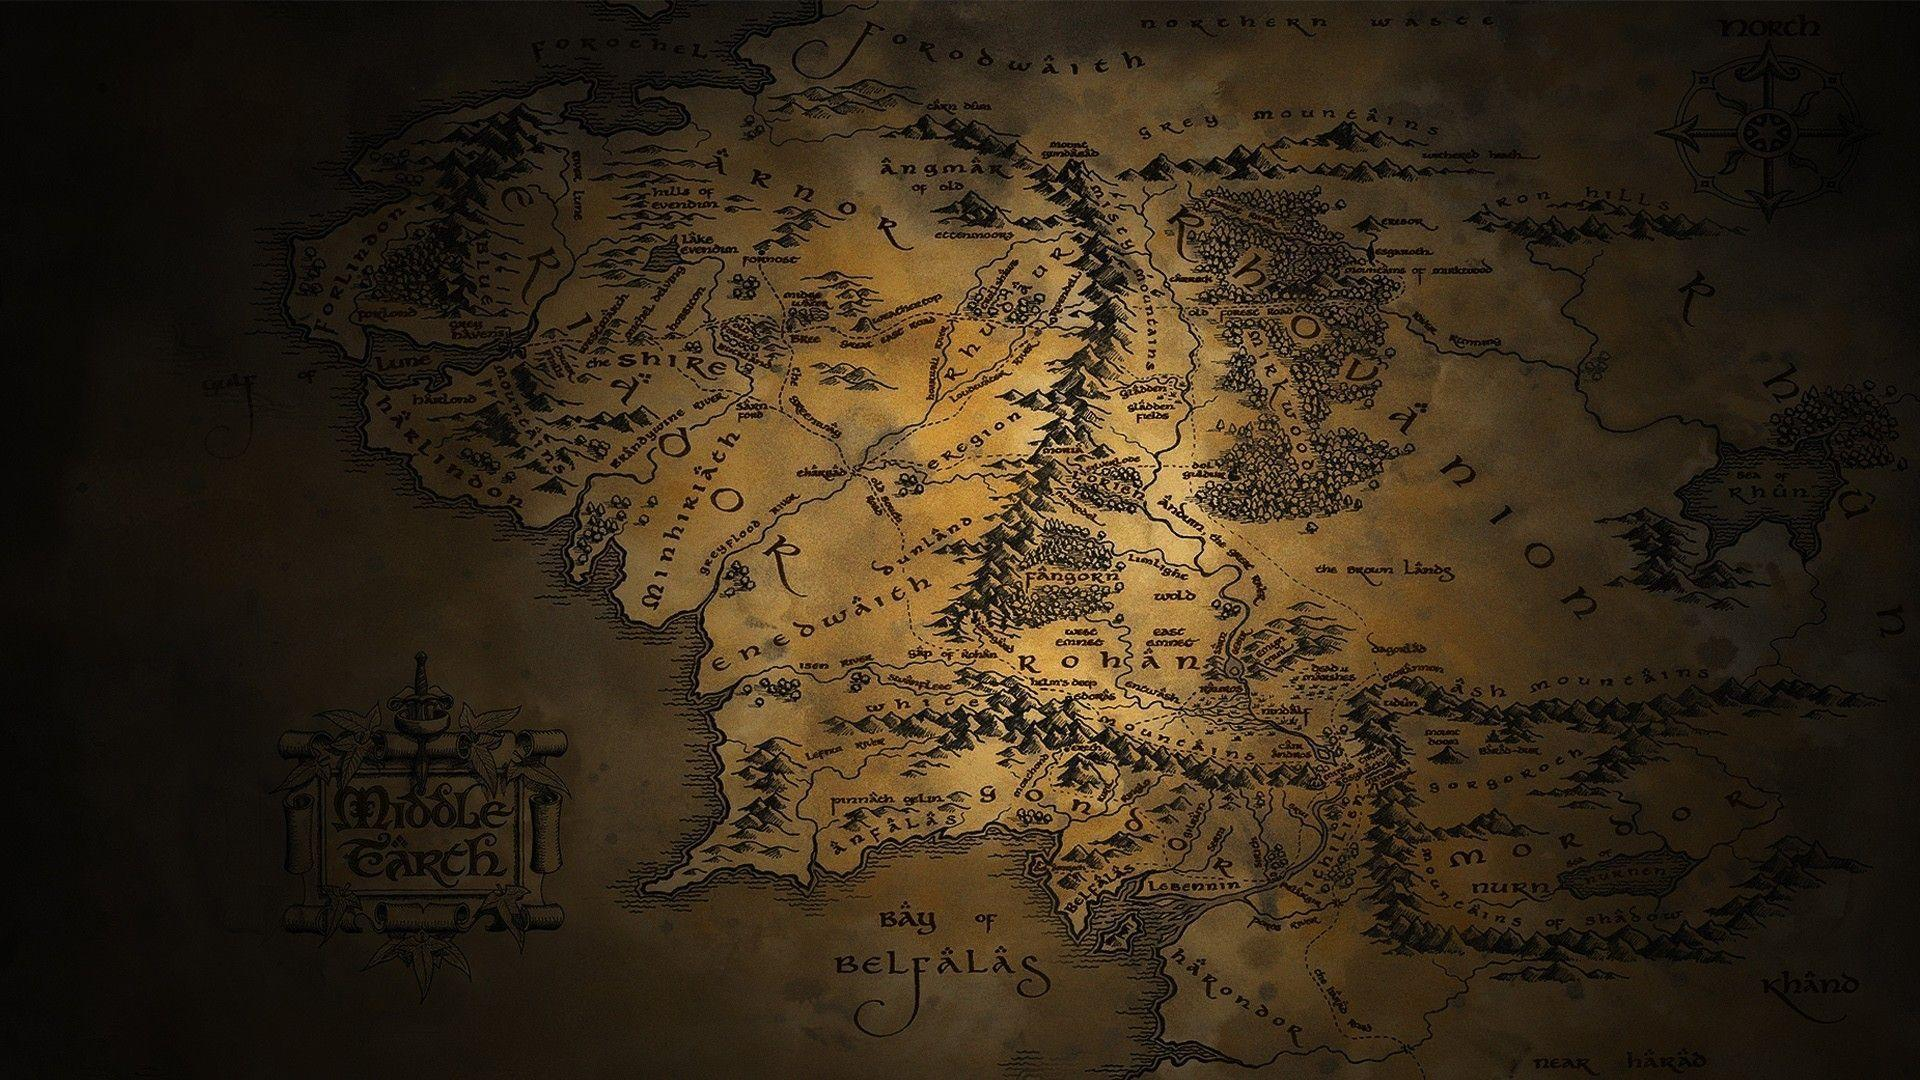 early maps hd wallpaper - photo #2